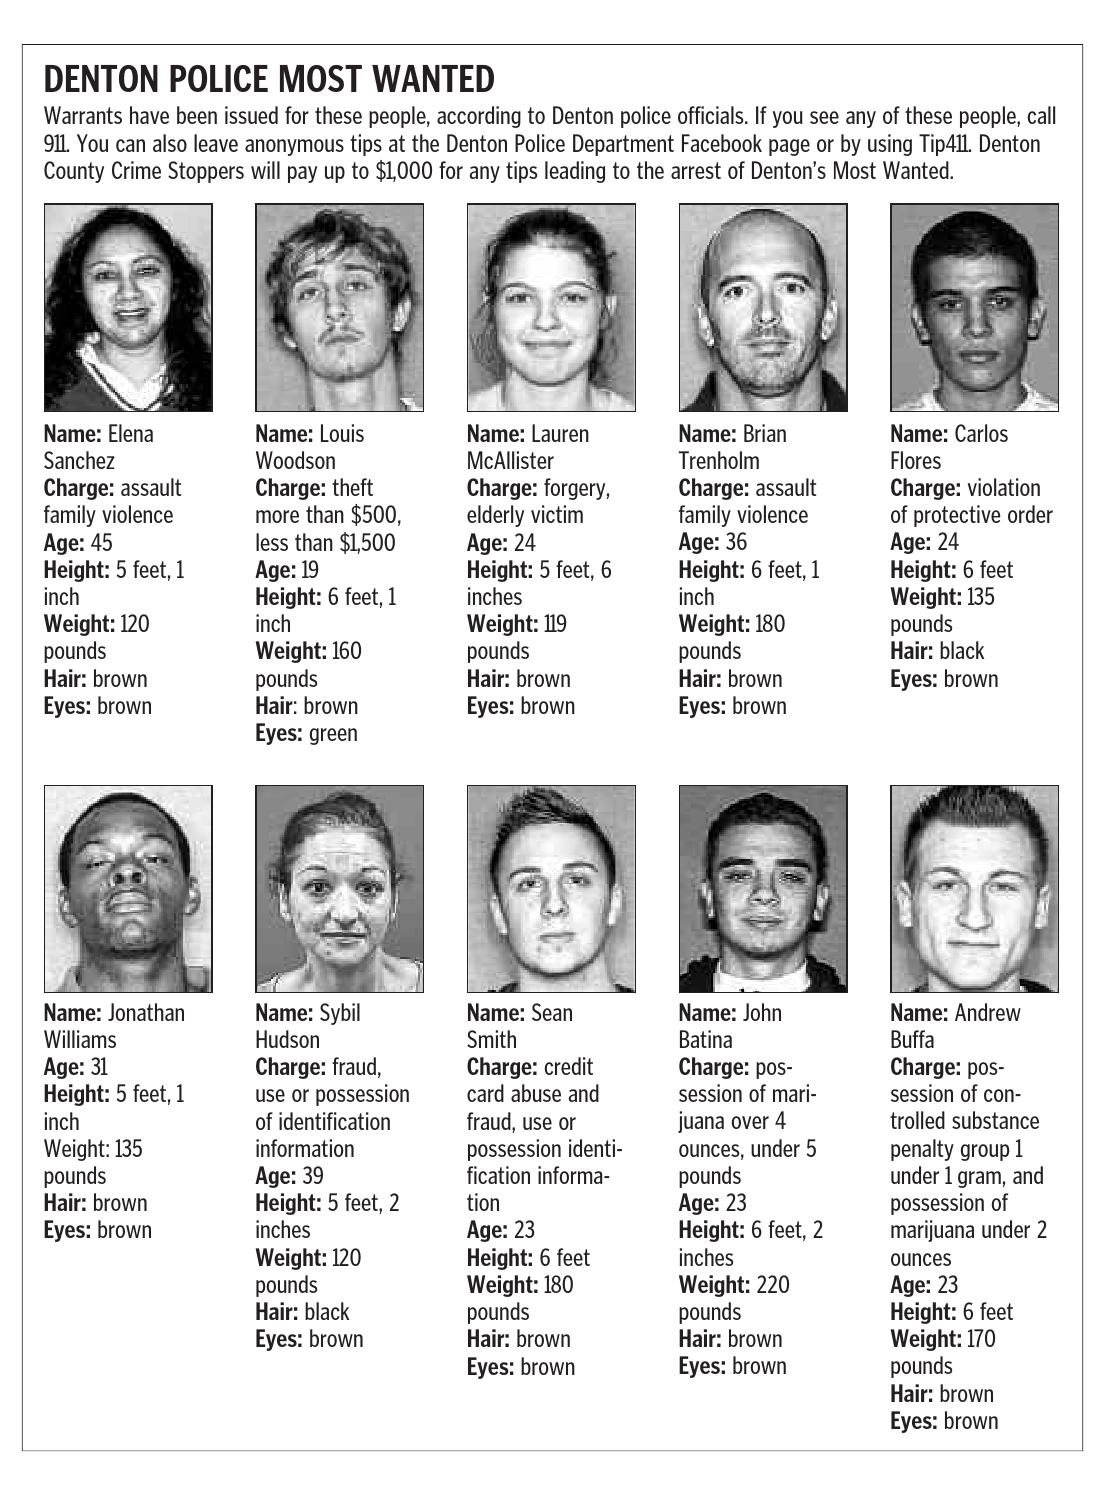 City of Denton Police Most Wanted by Larry McBride - issuu